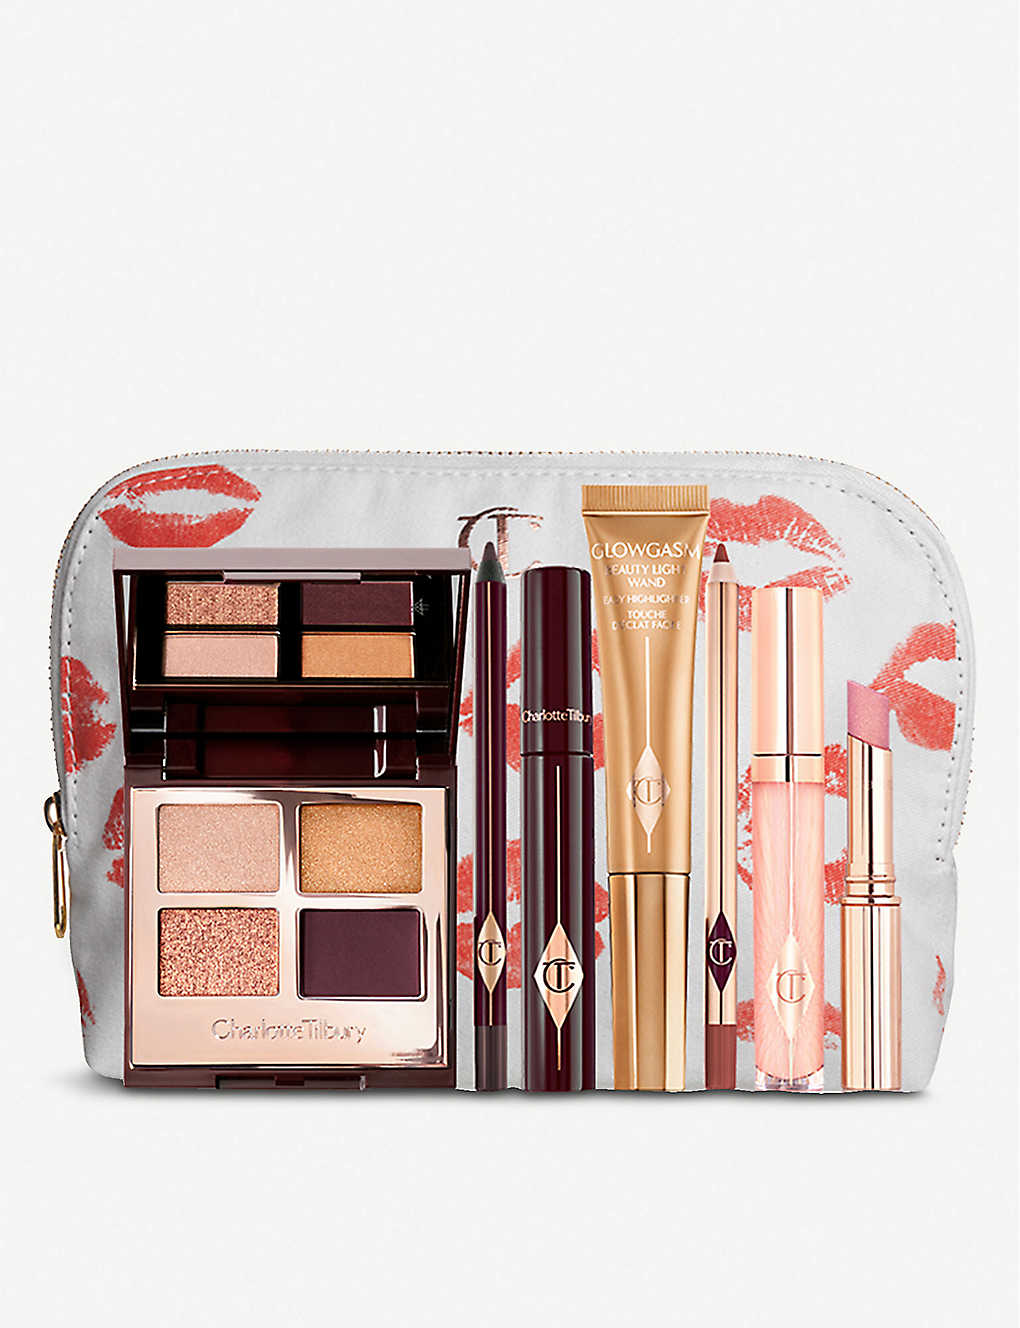 CHARLOTTE TILBURY: The Queen of Glow Look set